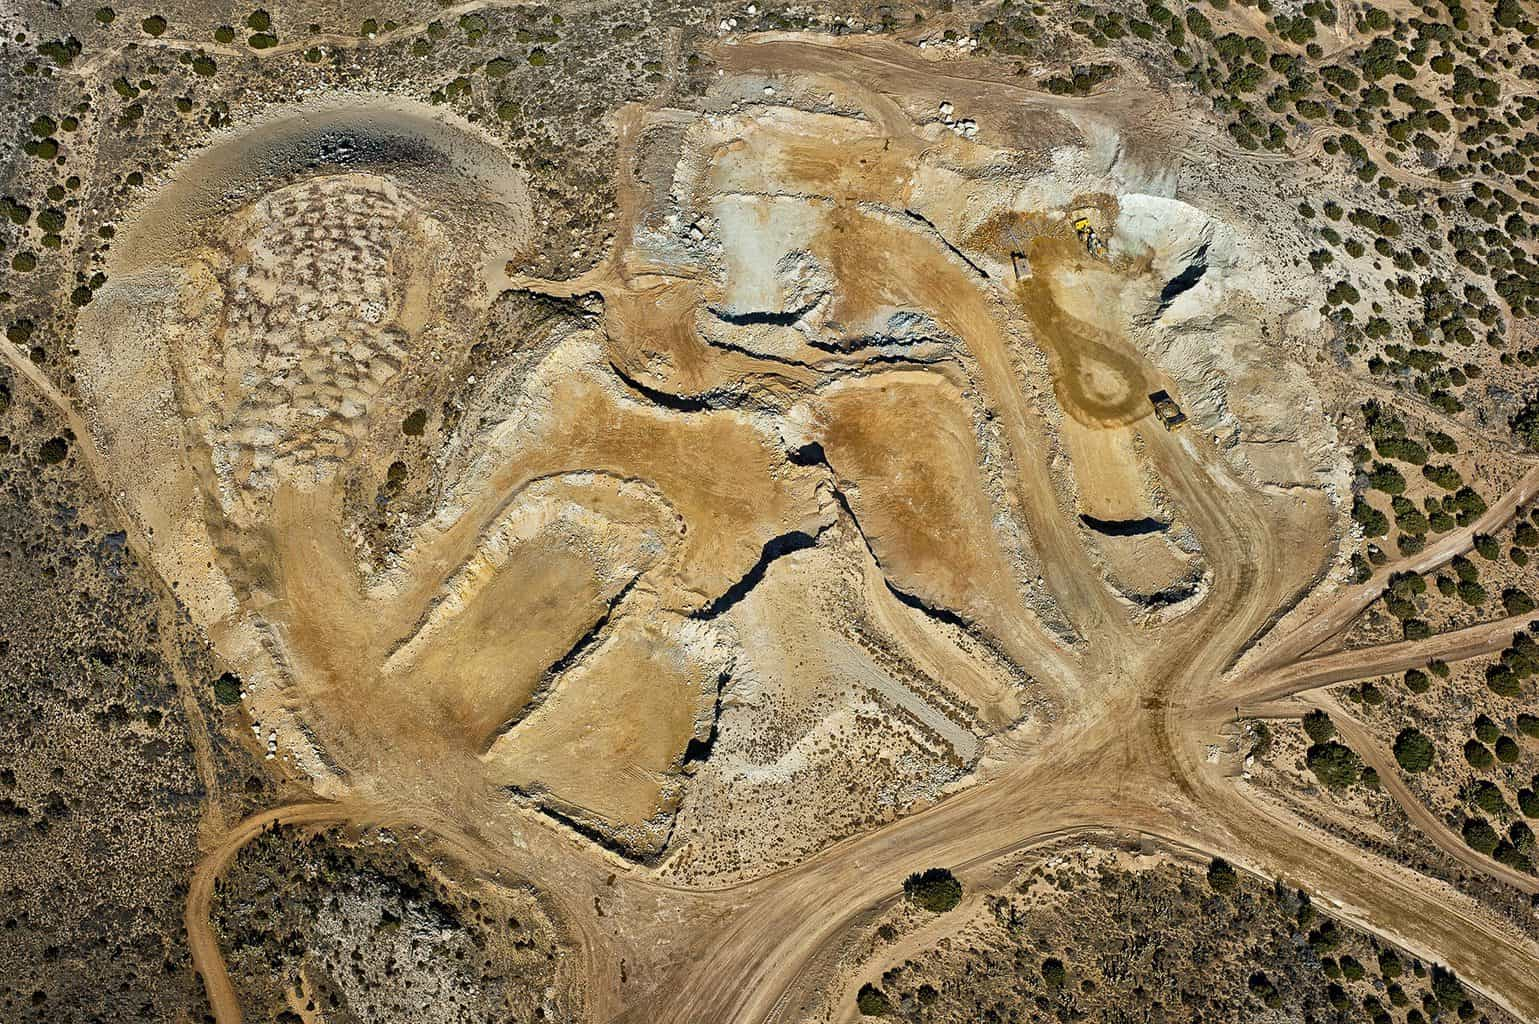 Mining #004, Mulholland's Gold, 2011-2014